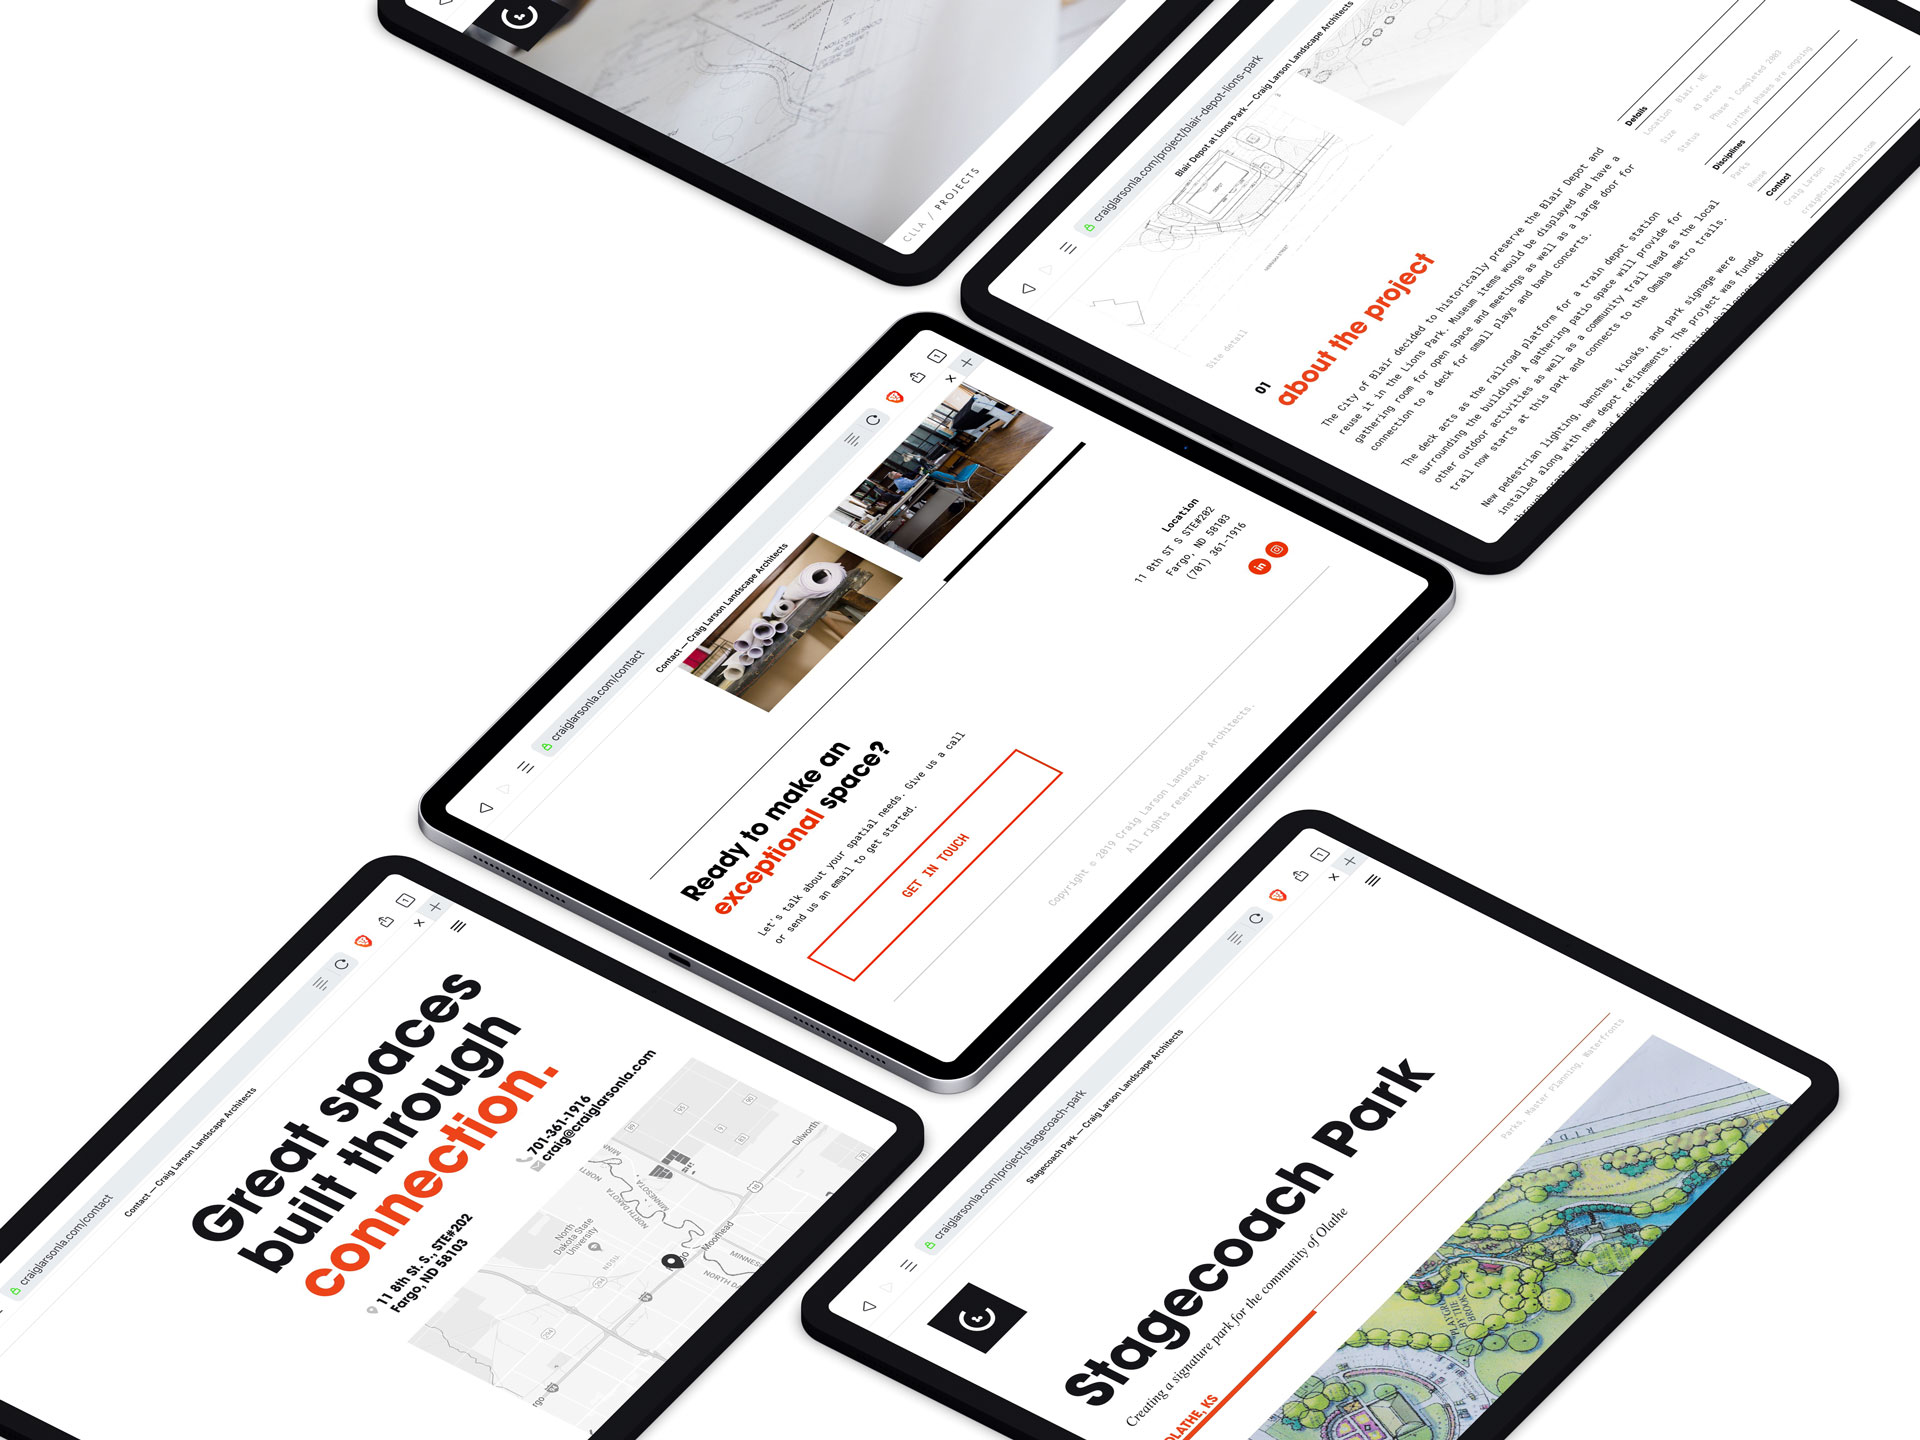 Isometric view of iPad screens showing various screenshots of the CLLA website